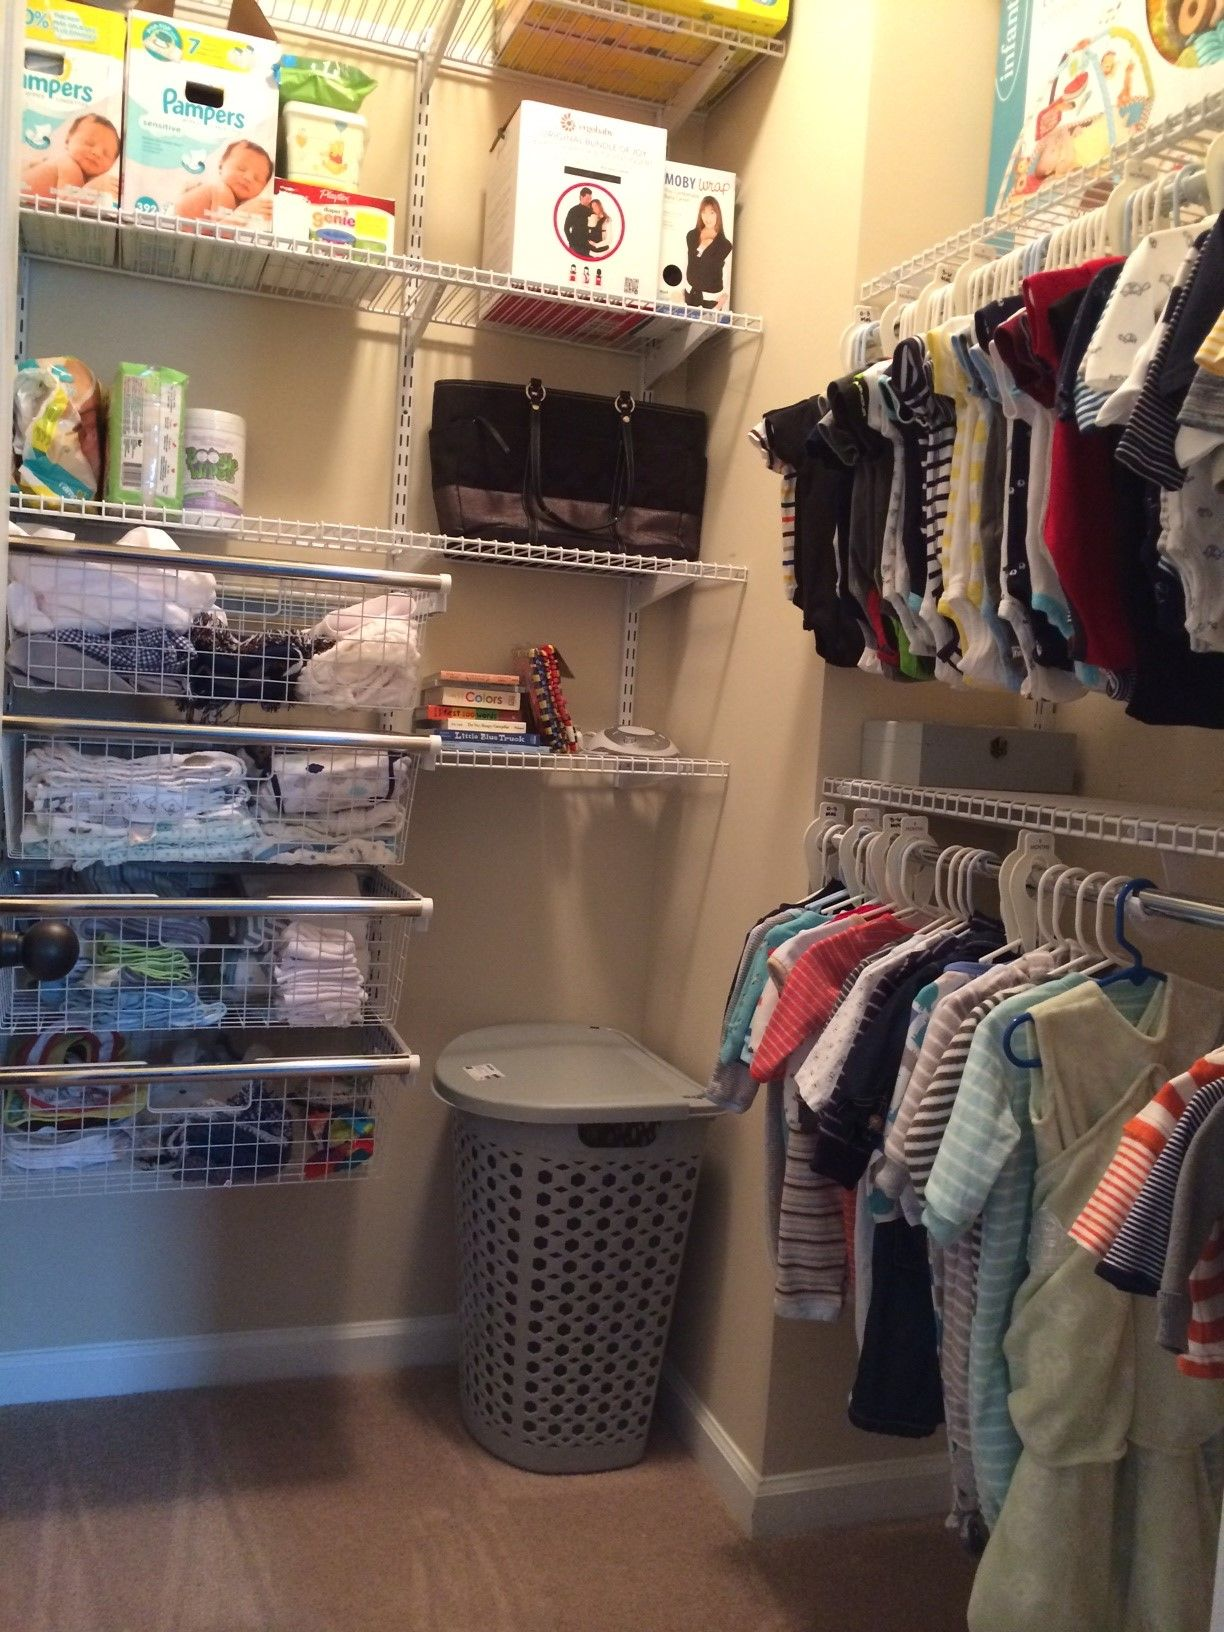 Custom Closet For The Nursery! Rubbermaid Homefree From Lowes. #closet  #organization #nursery #babyboy